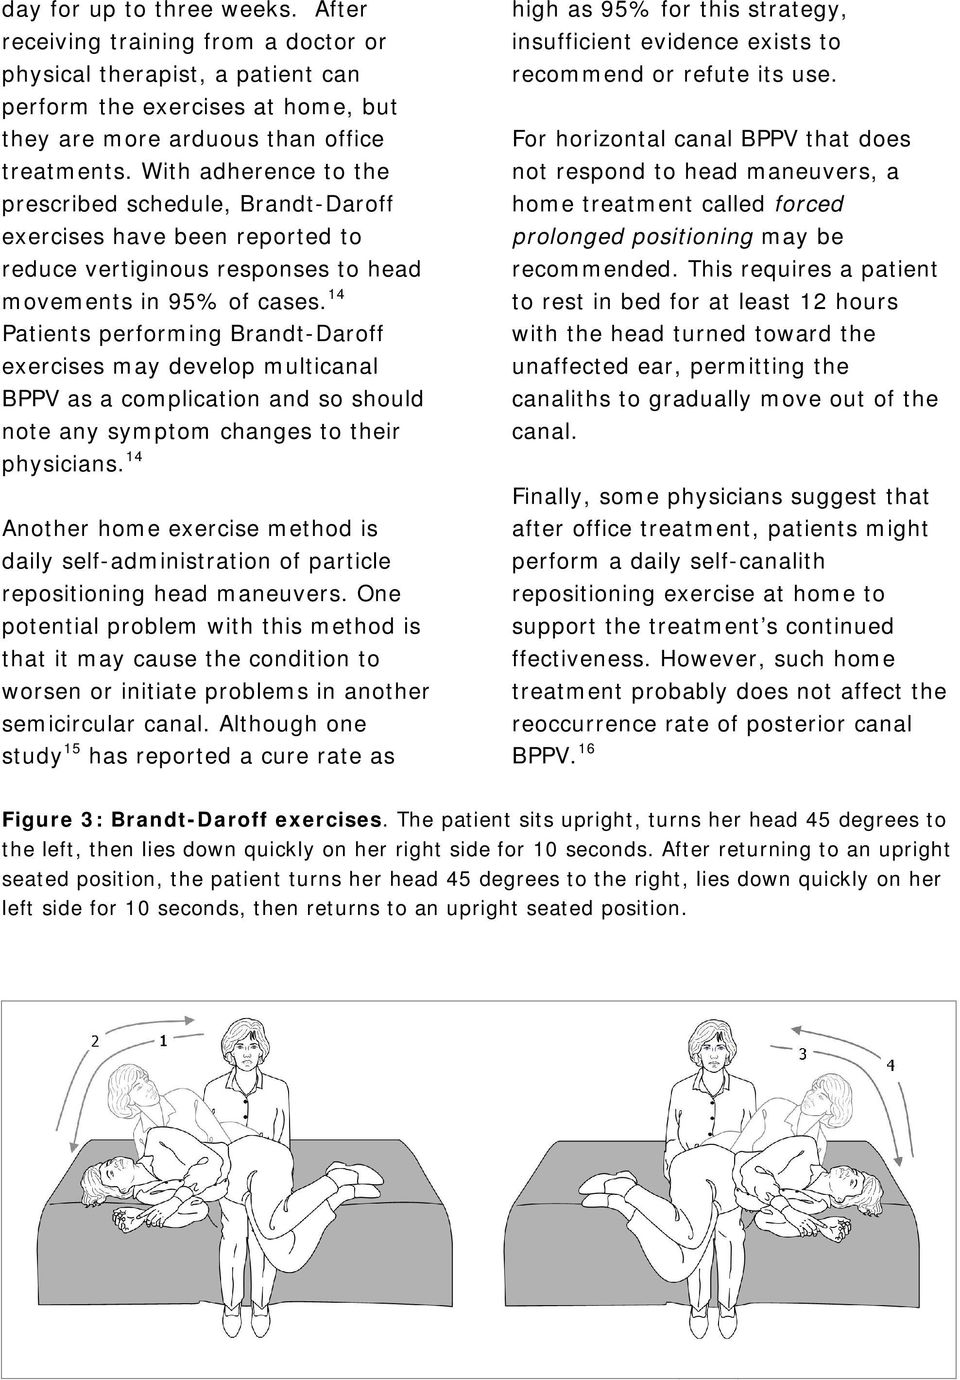 14 Patients performing Brandt-Daroff exercises may develop multicanal BPPV as a complication and so should note any symptom changes to their physicians.